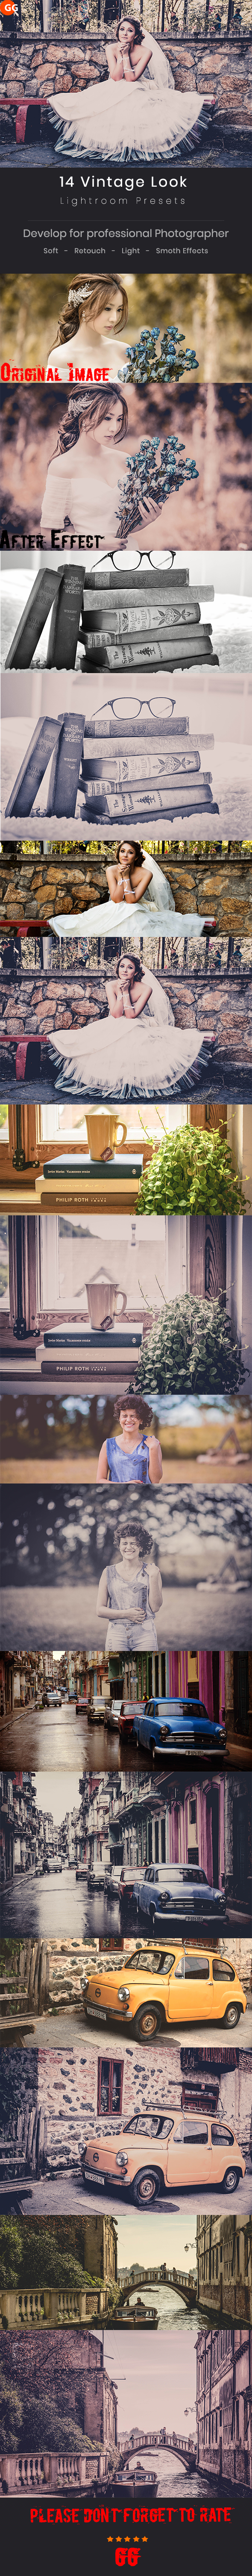 14 Vintage Look Lightroom Preset - Vintage Lightroom Presets